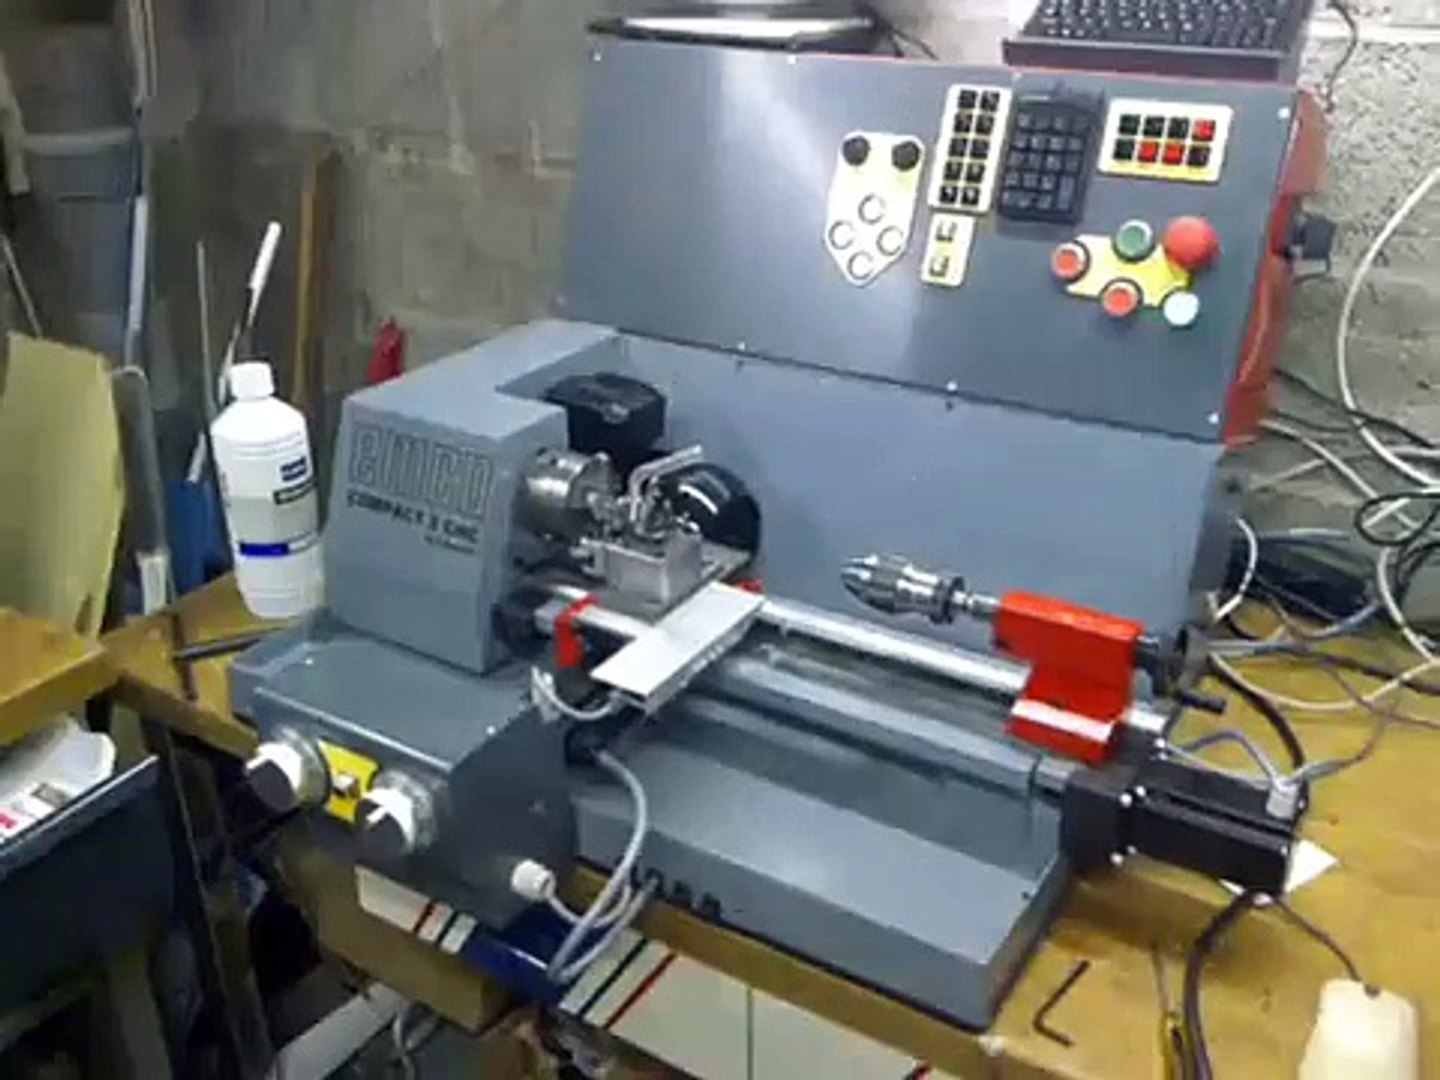 EMCO COMPACT5 cnc lathe monster retrofit mach3 first time running !